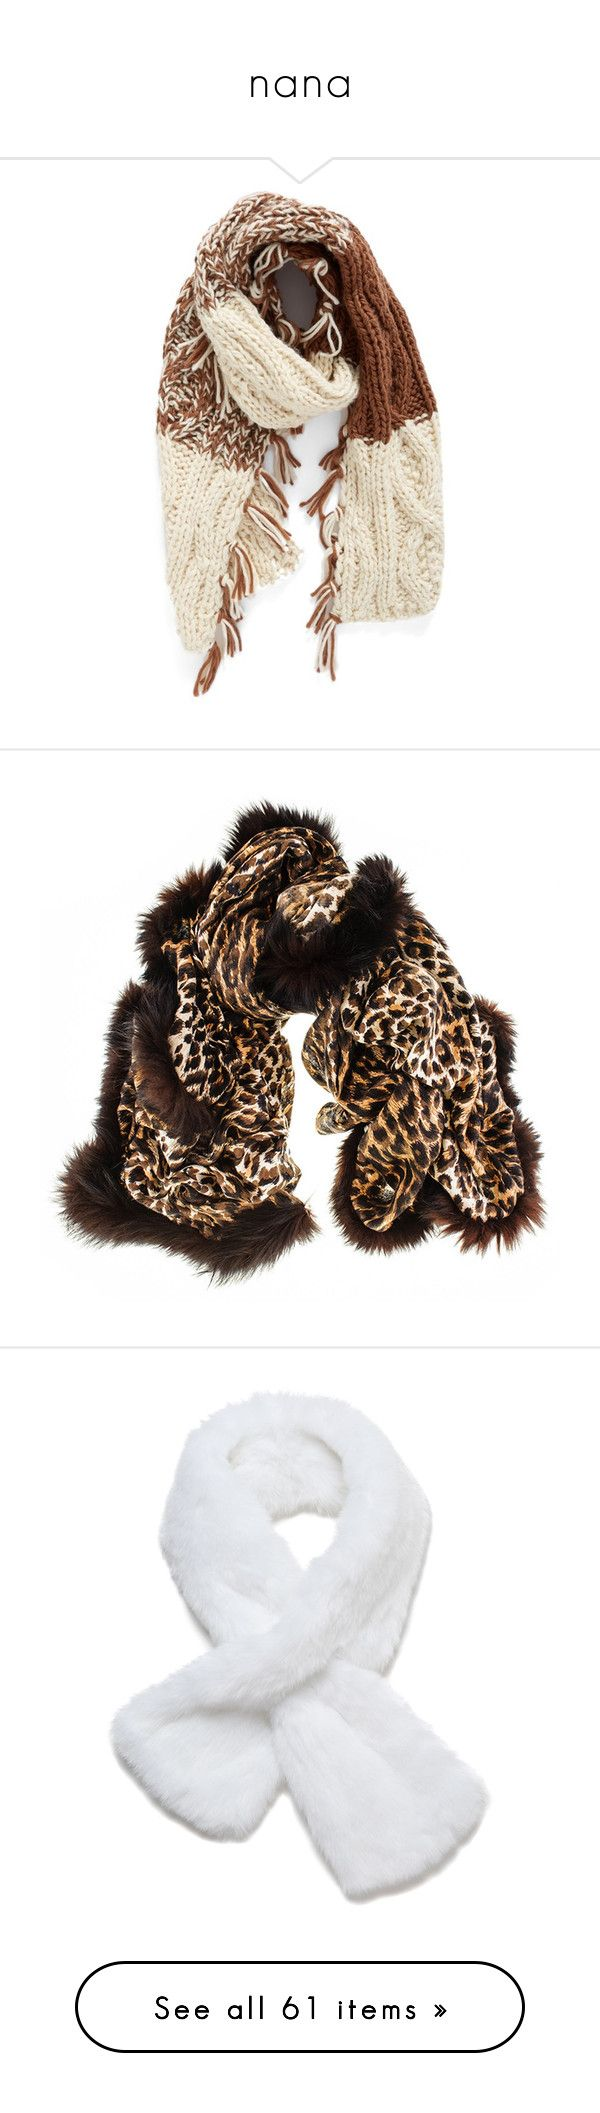 """""""nana"""" by nanawidia ❤ liked on Polyvore featuring accessories, scarves, brown combo, cable knit scarves, striped shawl, brown scarves, striped scarves, brown shawl, woven scarves and leopard scarves"""